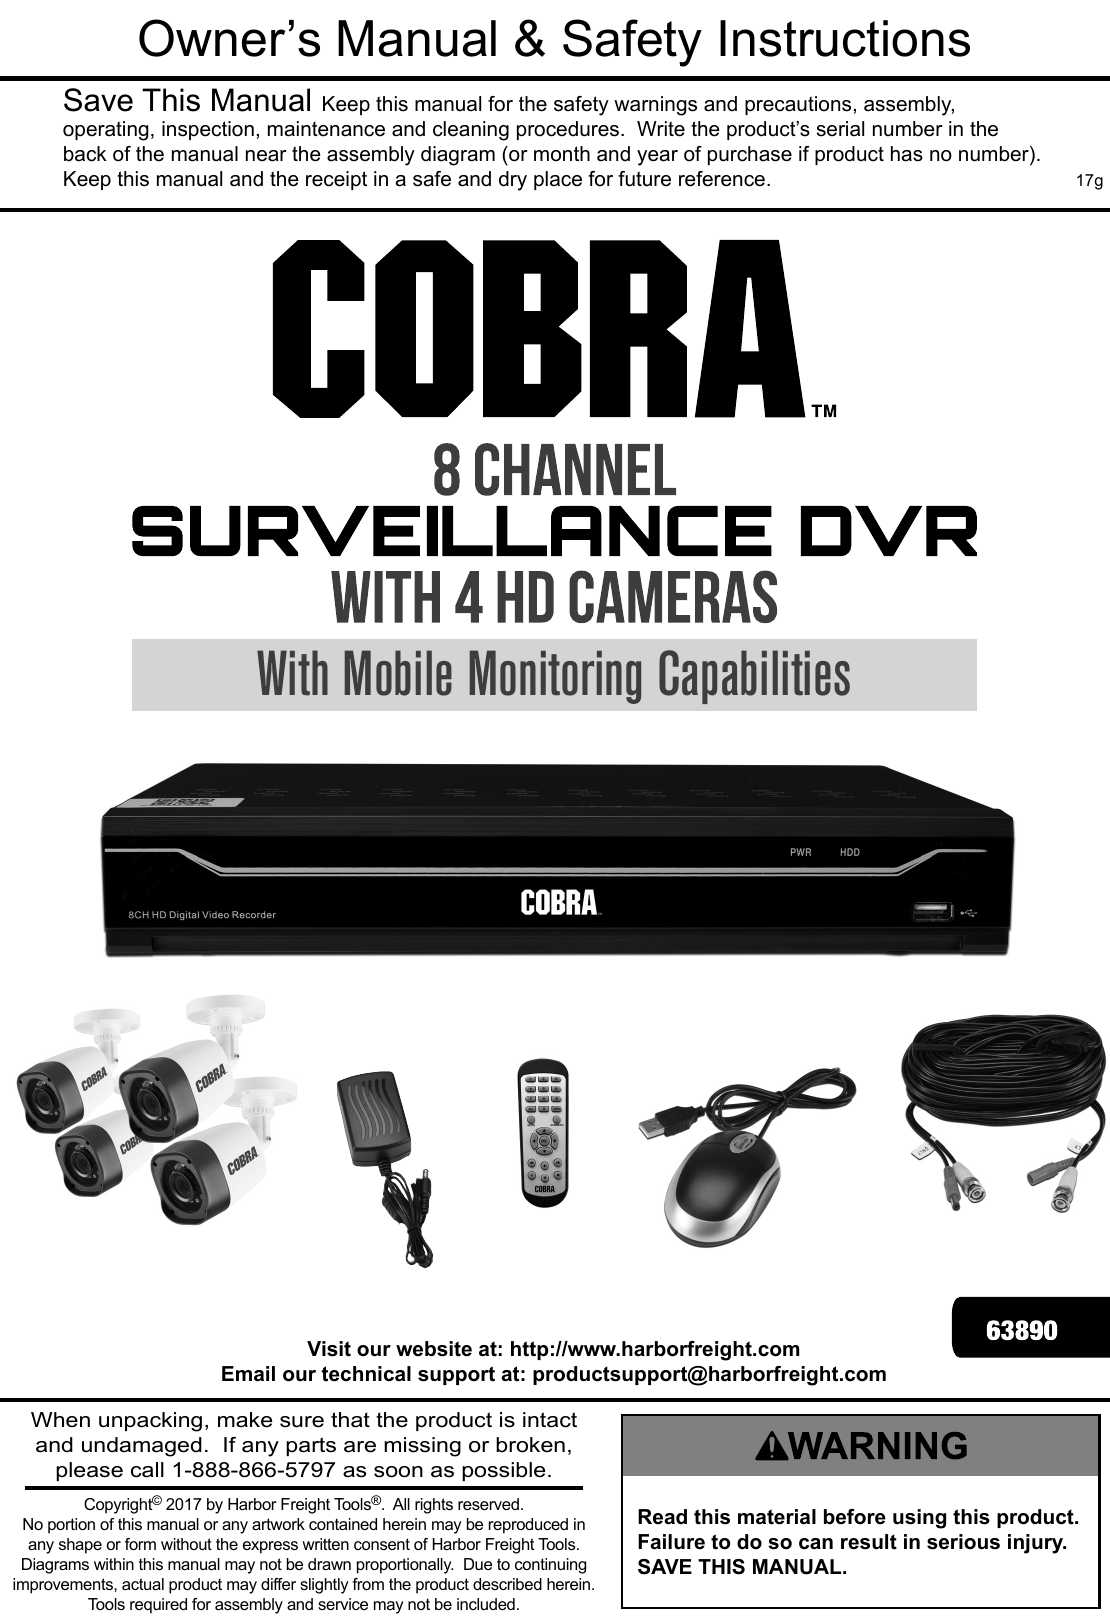 Manual For The 63890 8 Channel Surveillance DVR With 4 HD